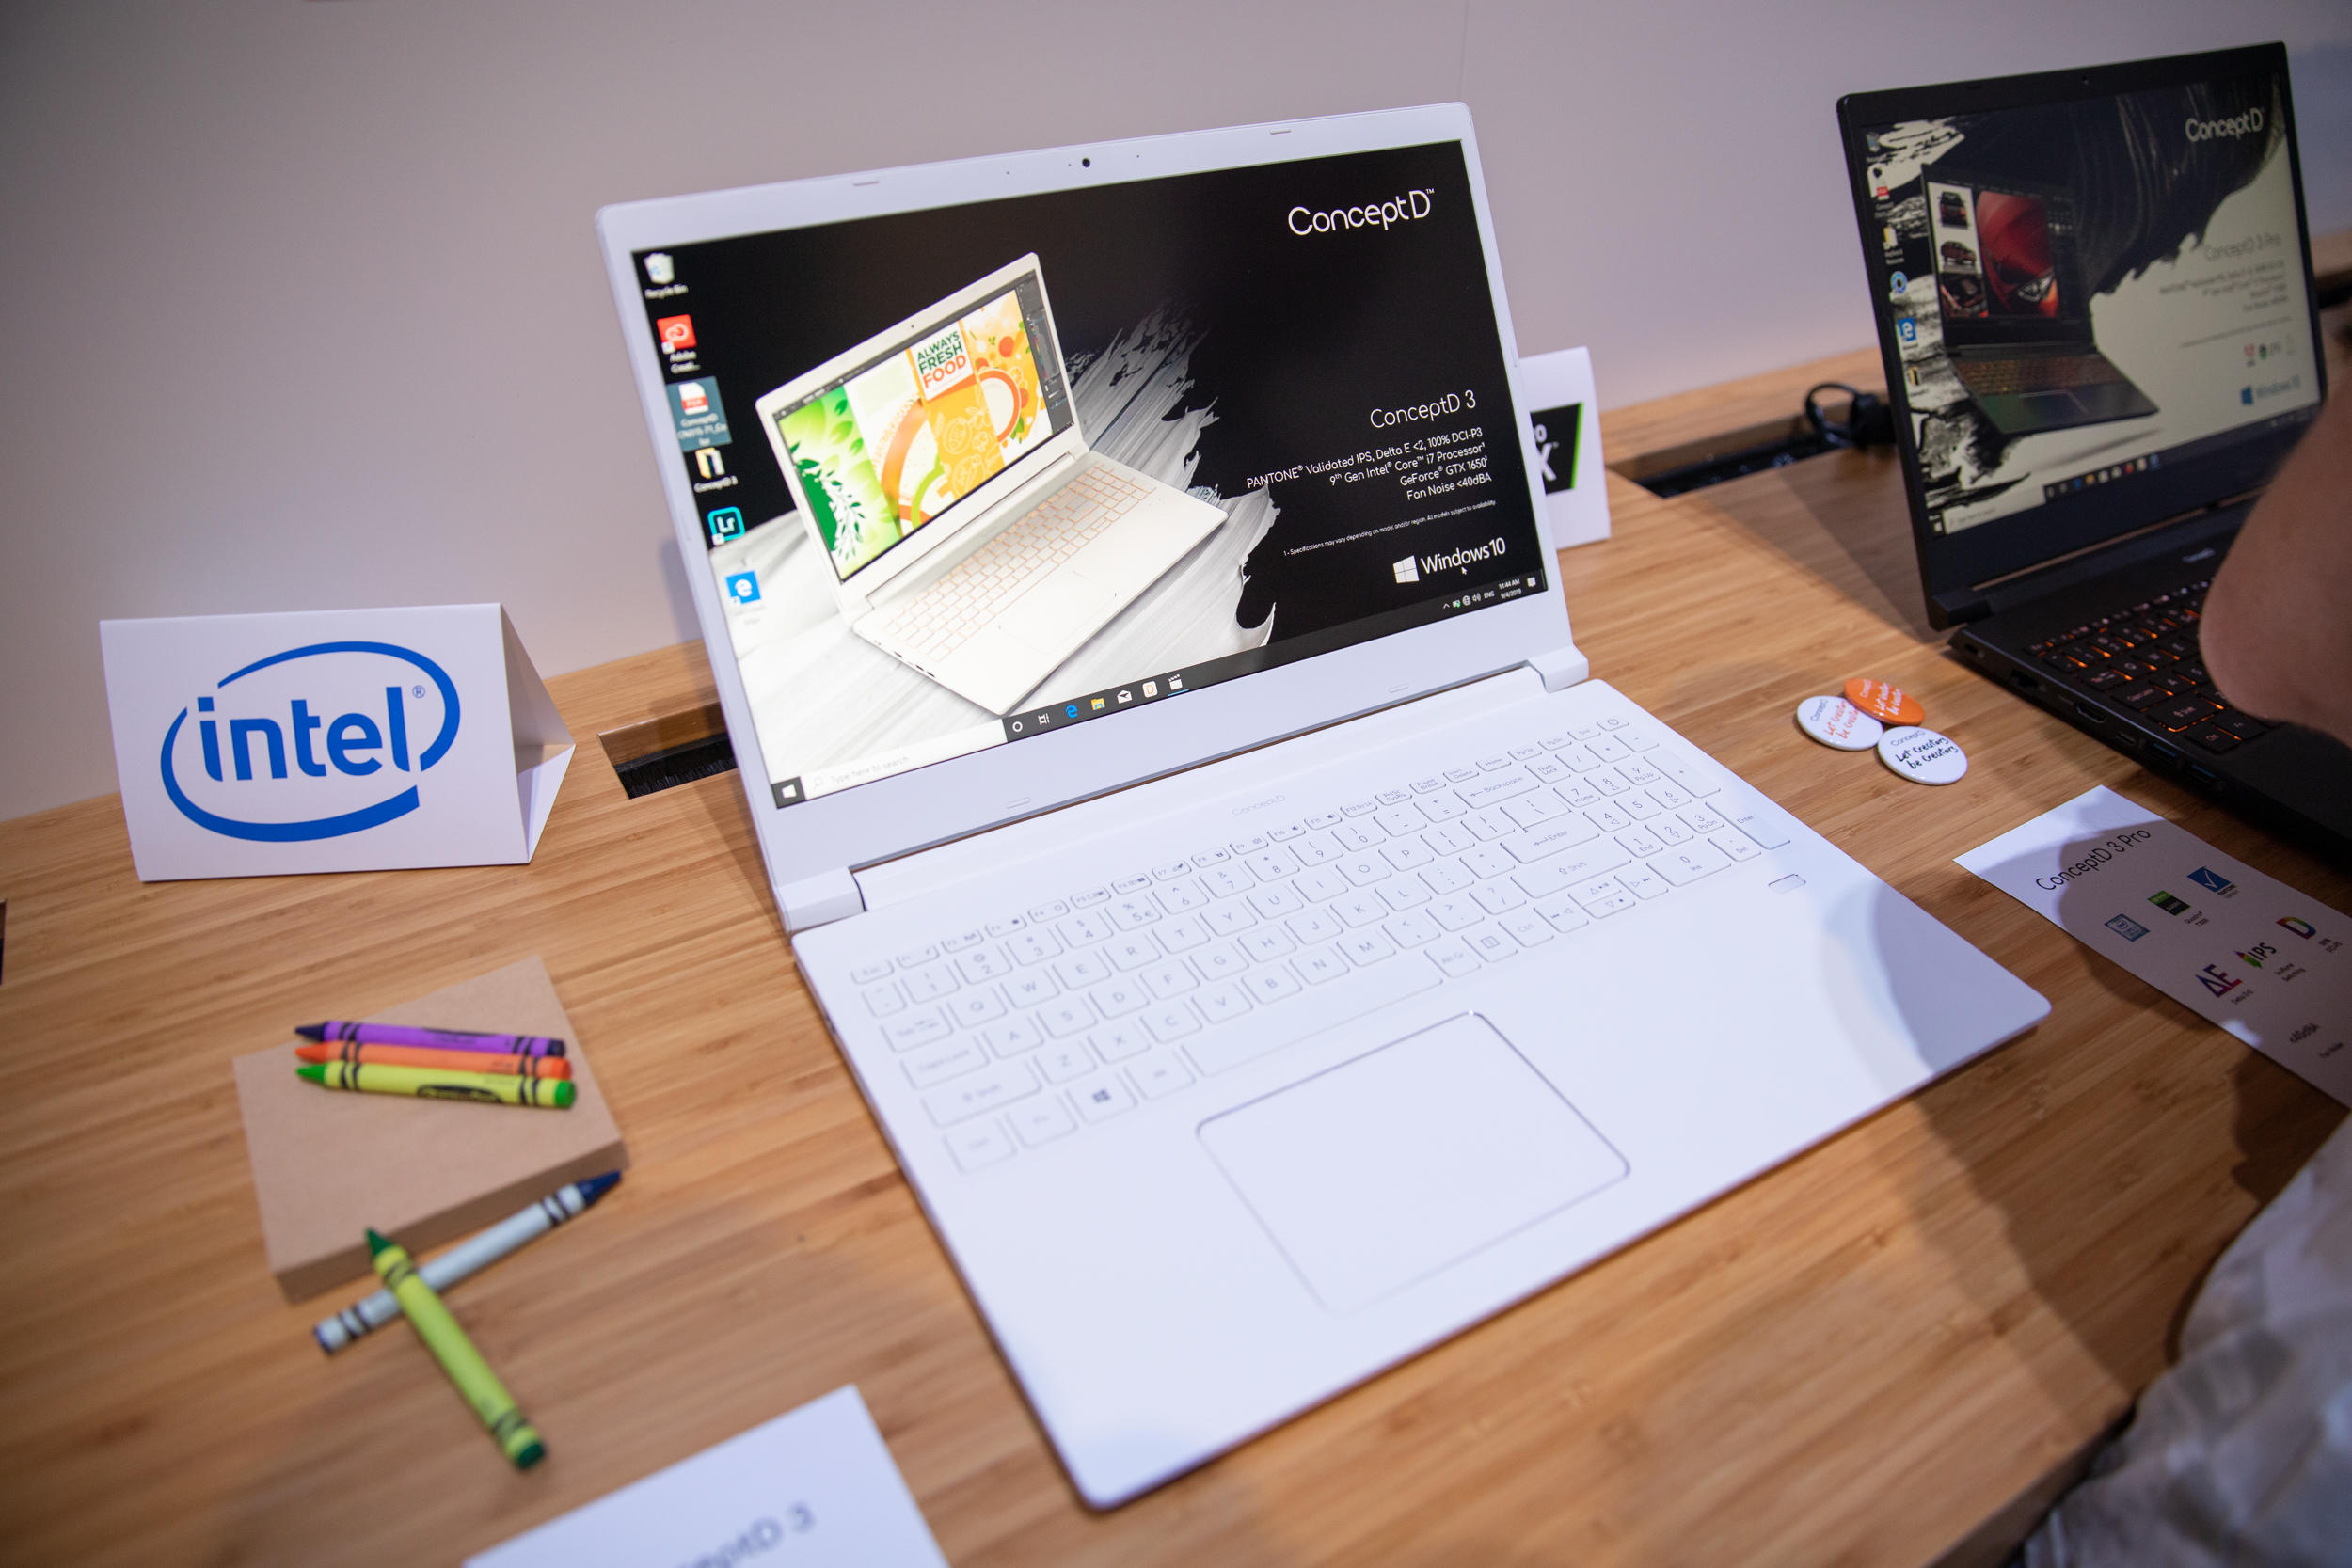 acer-laptops-ifa-conceptd-7-pro-2